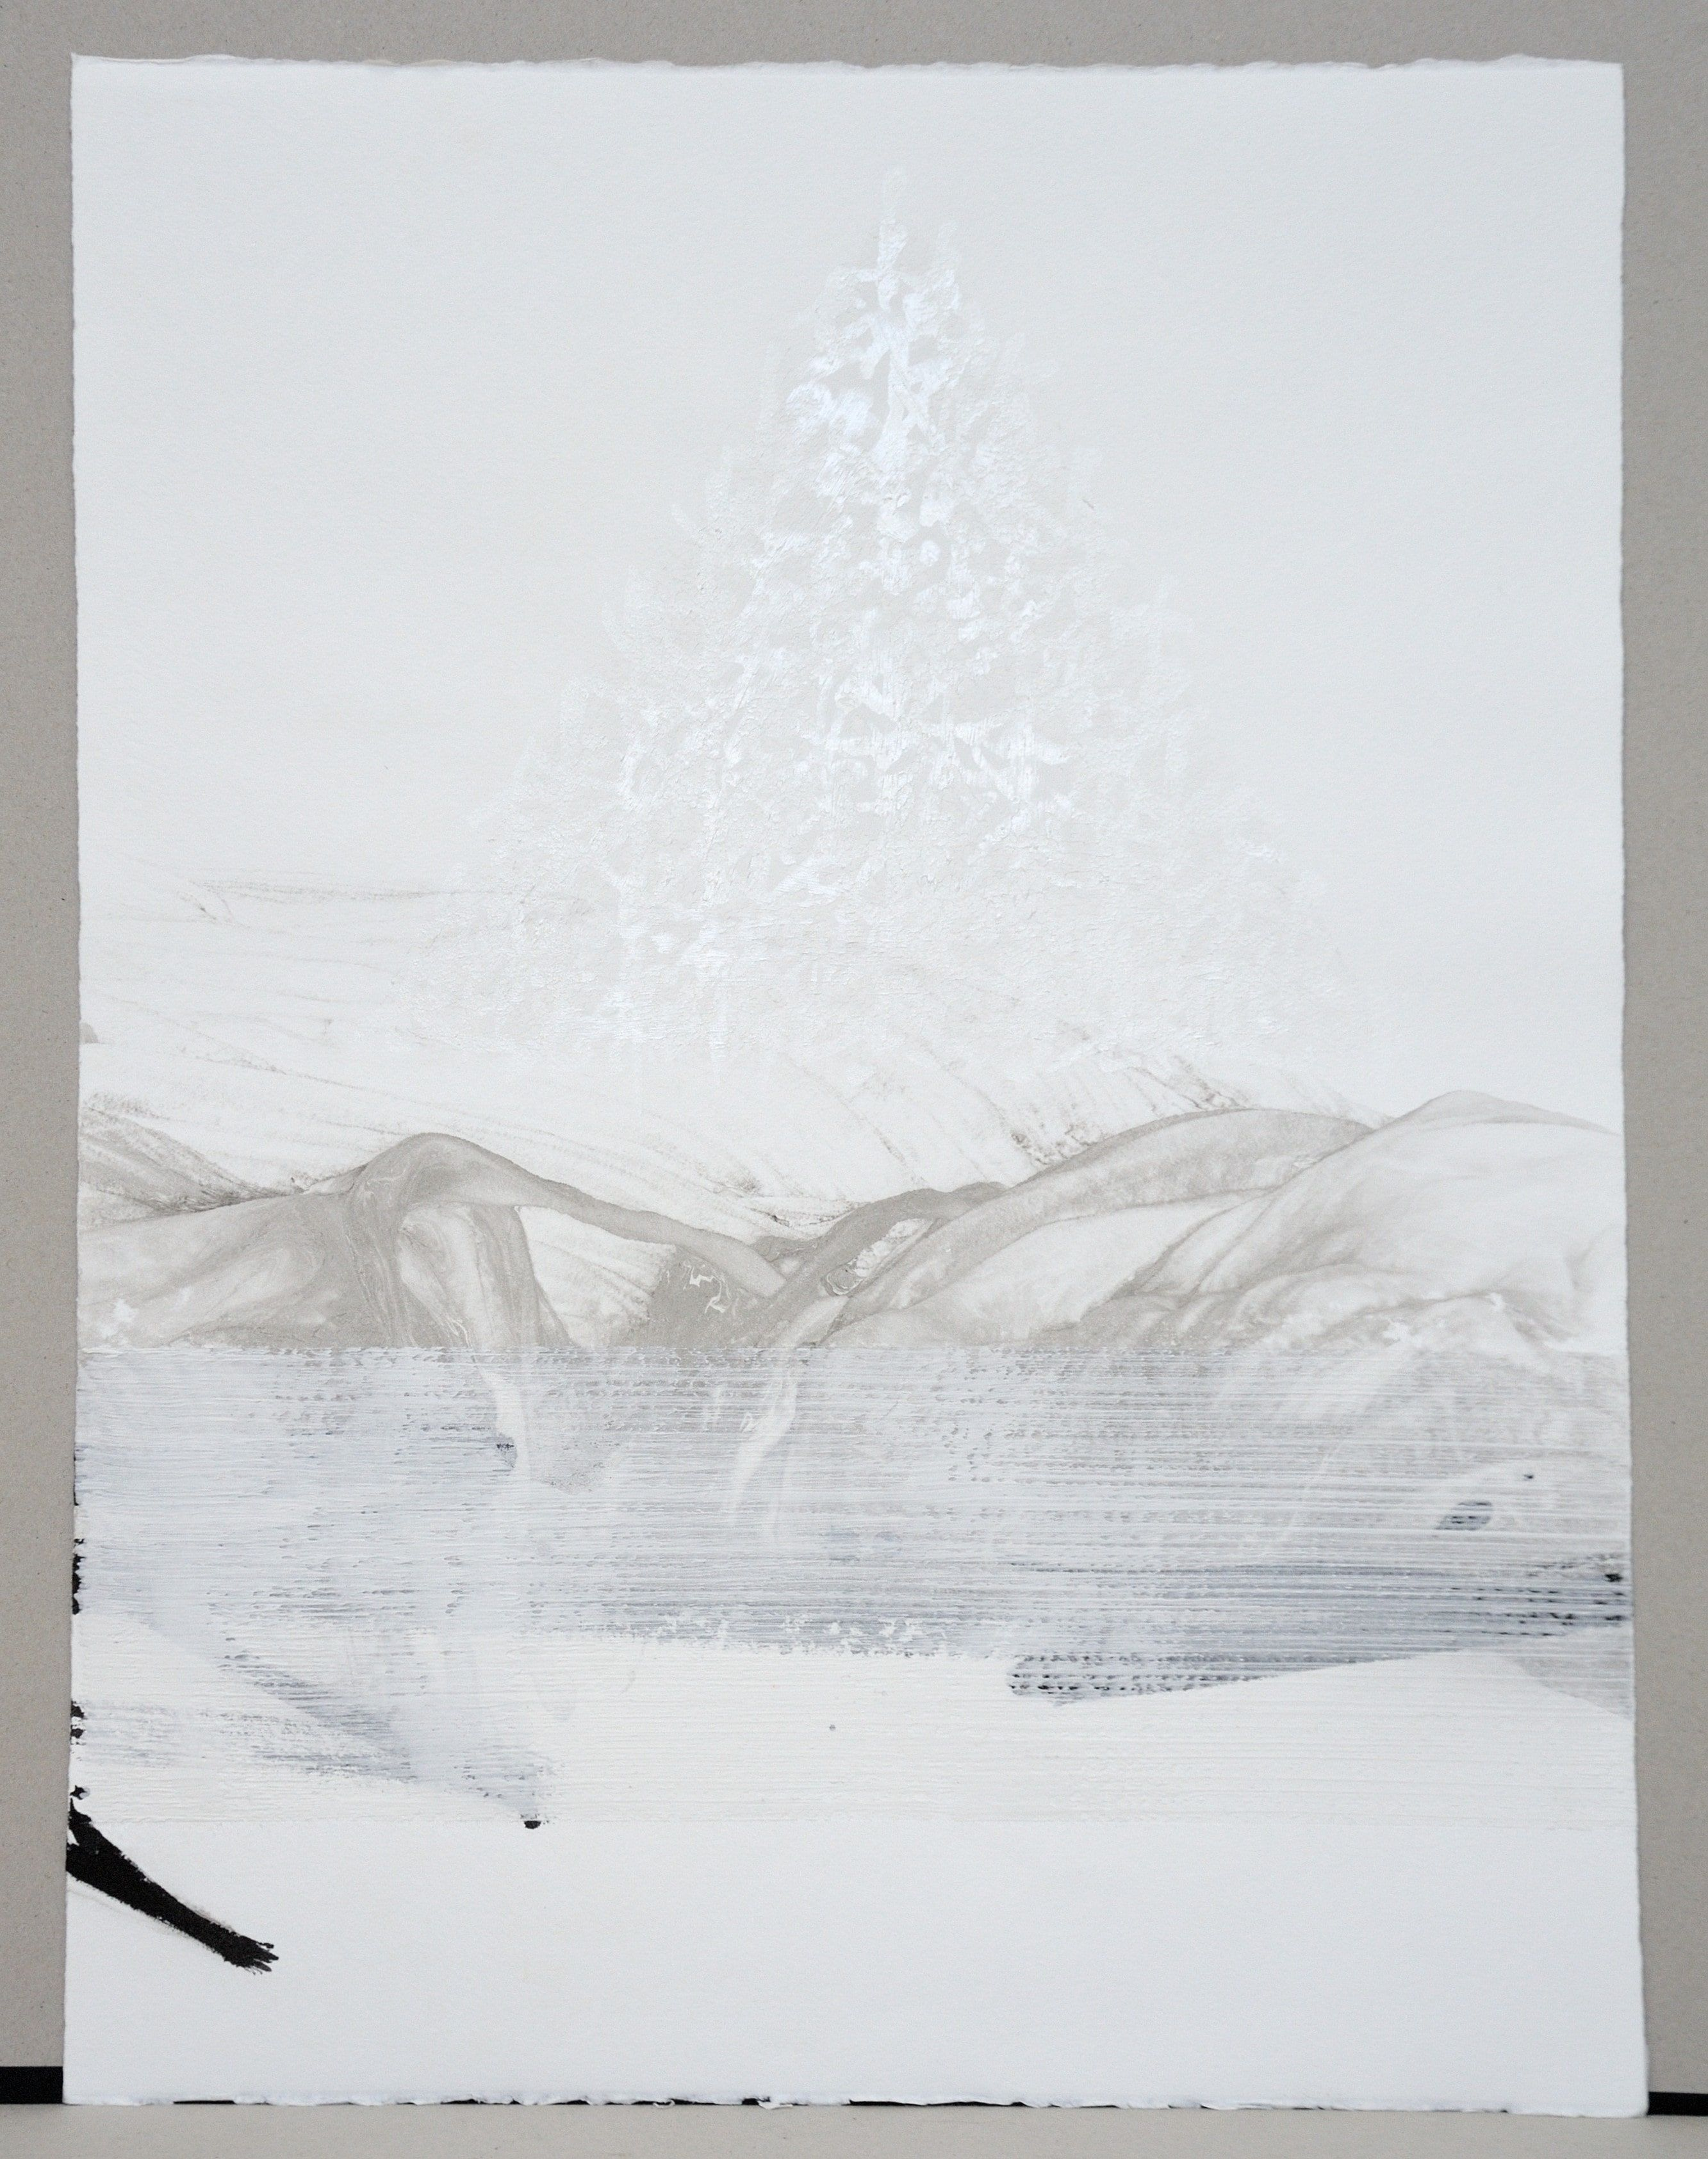 Permanescence N533-T - Hachiro Kanno - Contemporary painting - detail 3